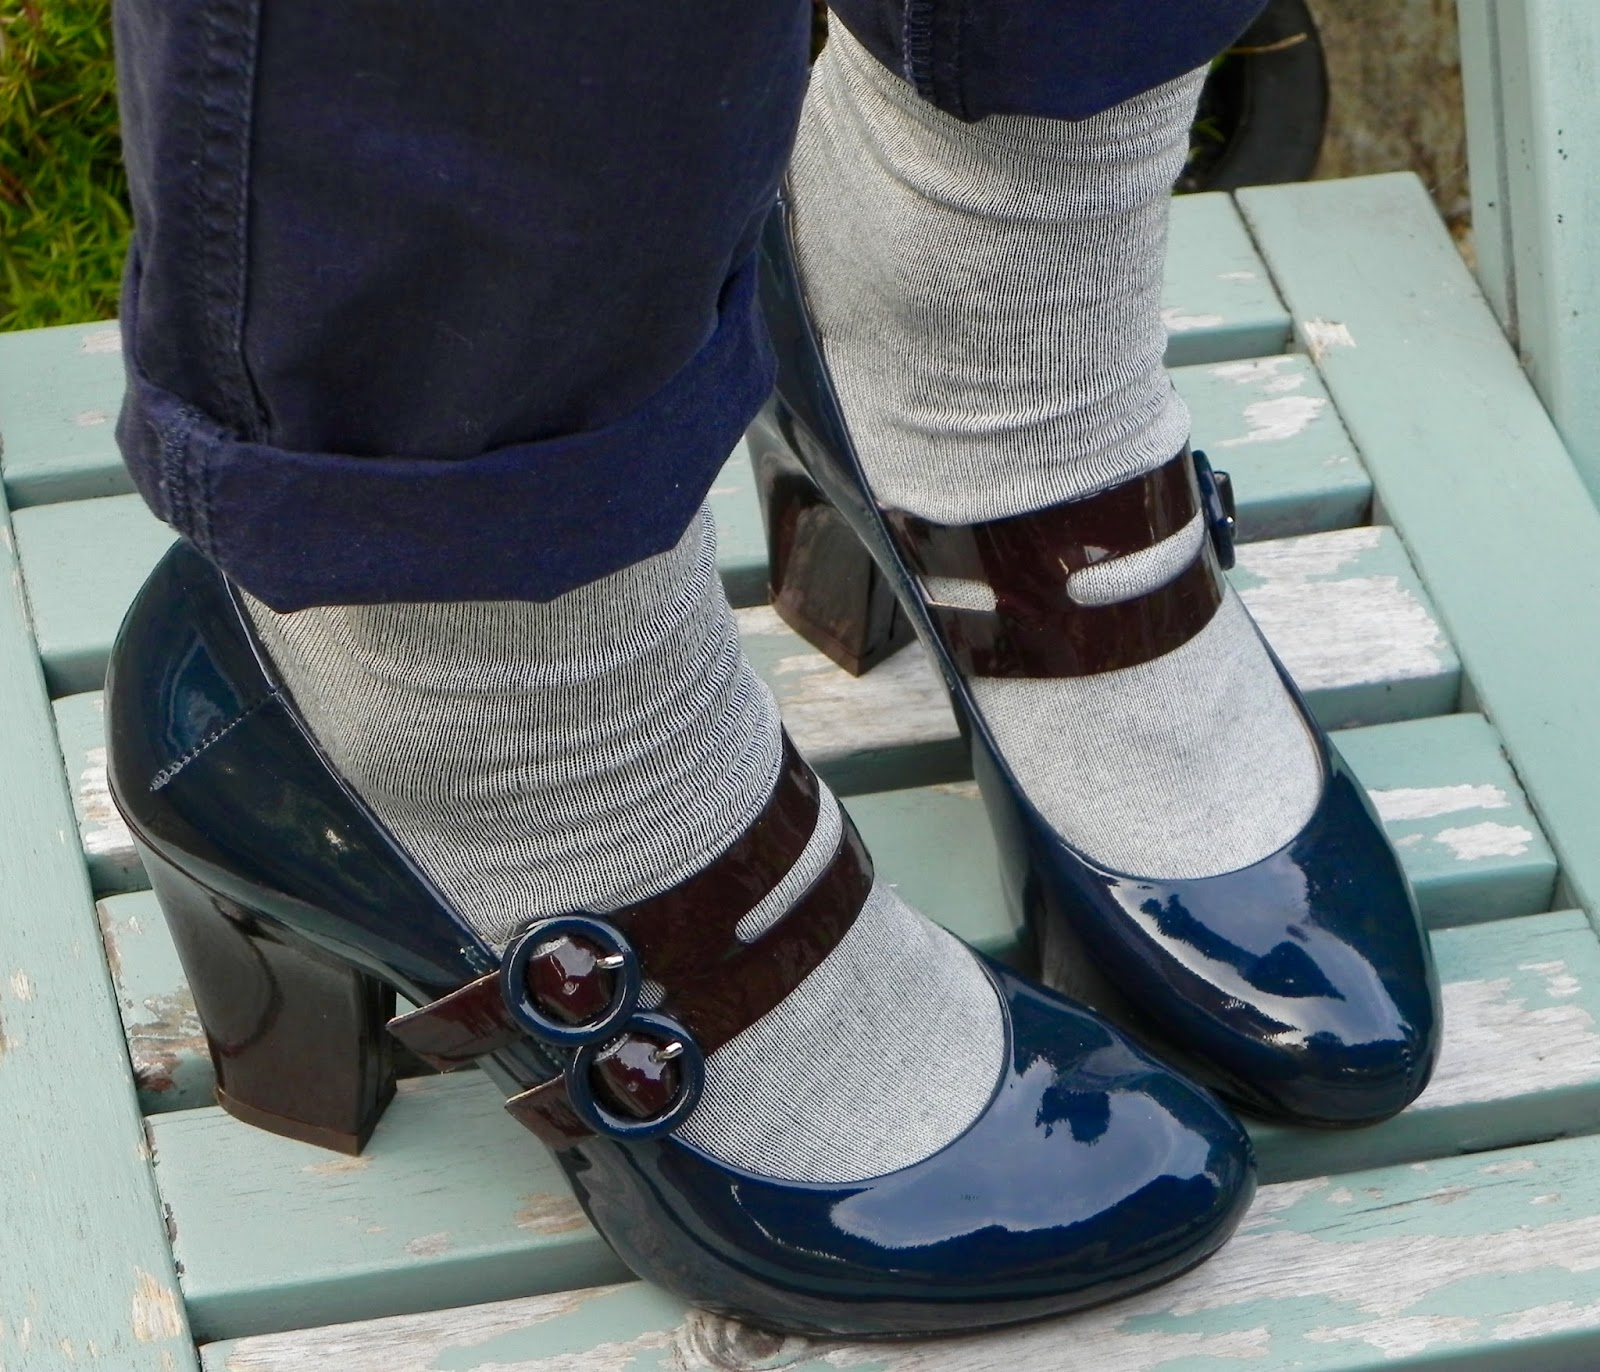 Petrol blue Clarks Mar-Jane shoes and socks.